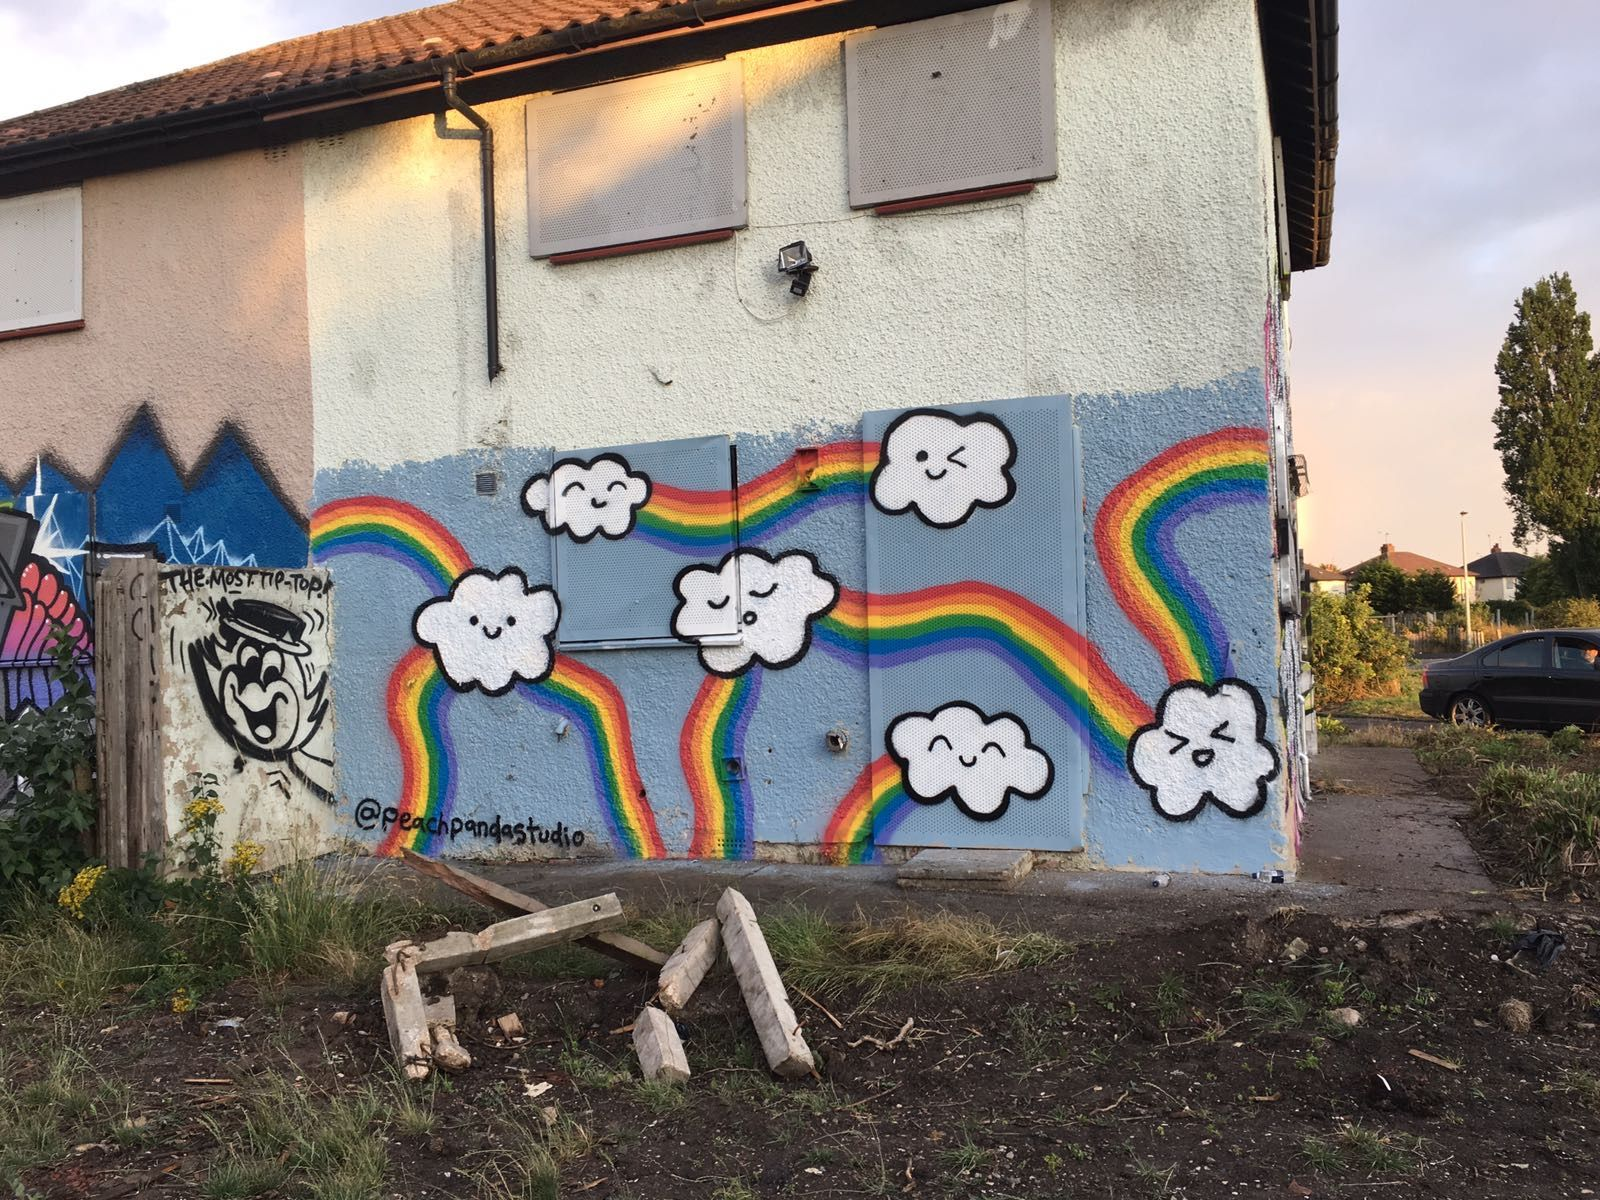 Painted rainbows and smiling clouds on the side of a derelict house